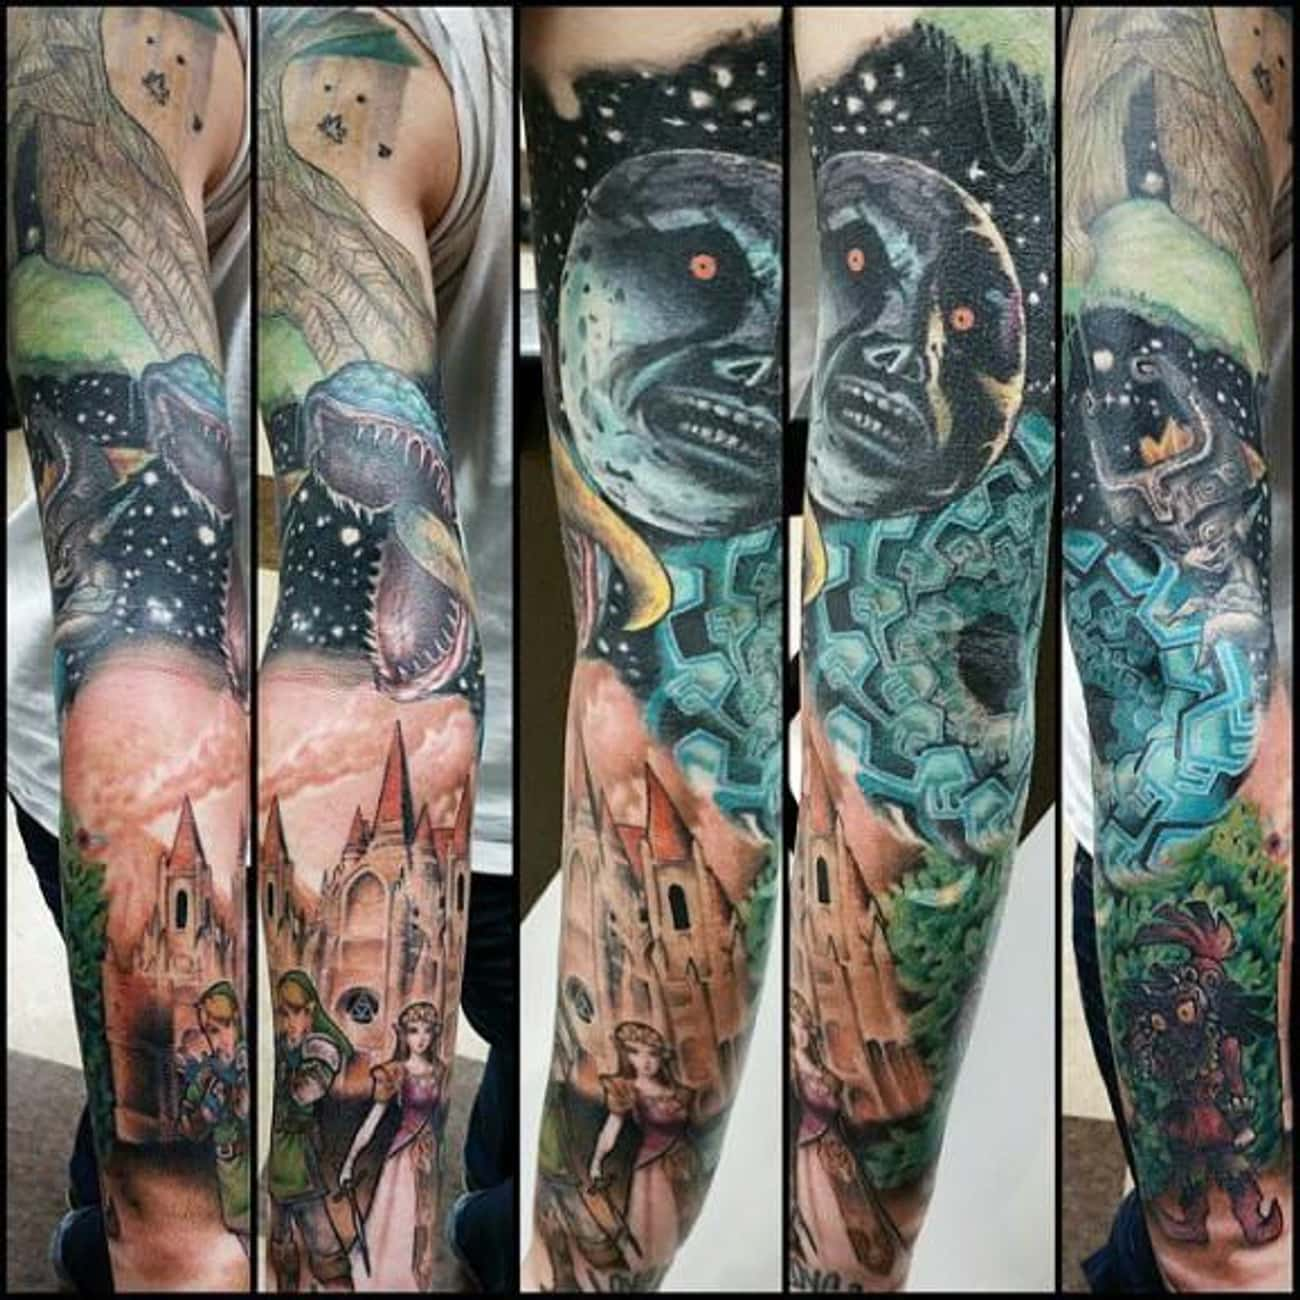 Sleeve of Impending Doom is listed (or ranked) 3 on the list Tattoos Inspired by the Legend of Zelda